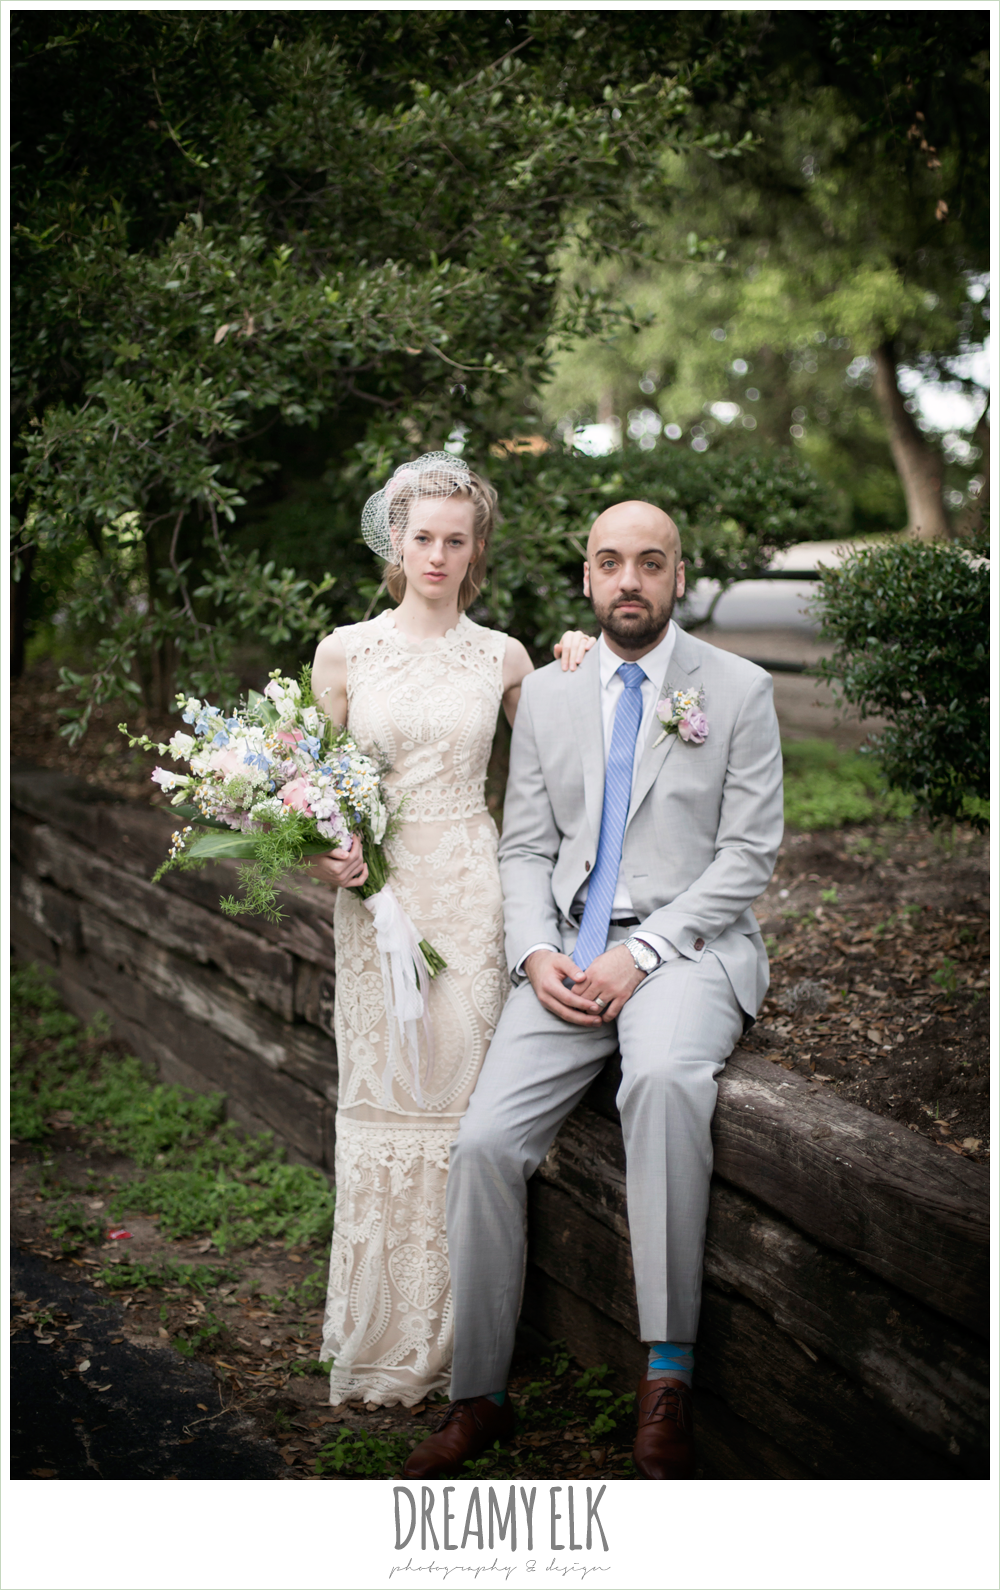 outdoor bride and groom portraits, bhldn ivory embroidered wedding dress, gray suit with blue tie, birdcage veil, pageant wildflower bouquet, spring wedding, hancock community center hyde park, austin, texas {dreamy elk photography and design}